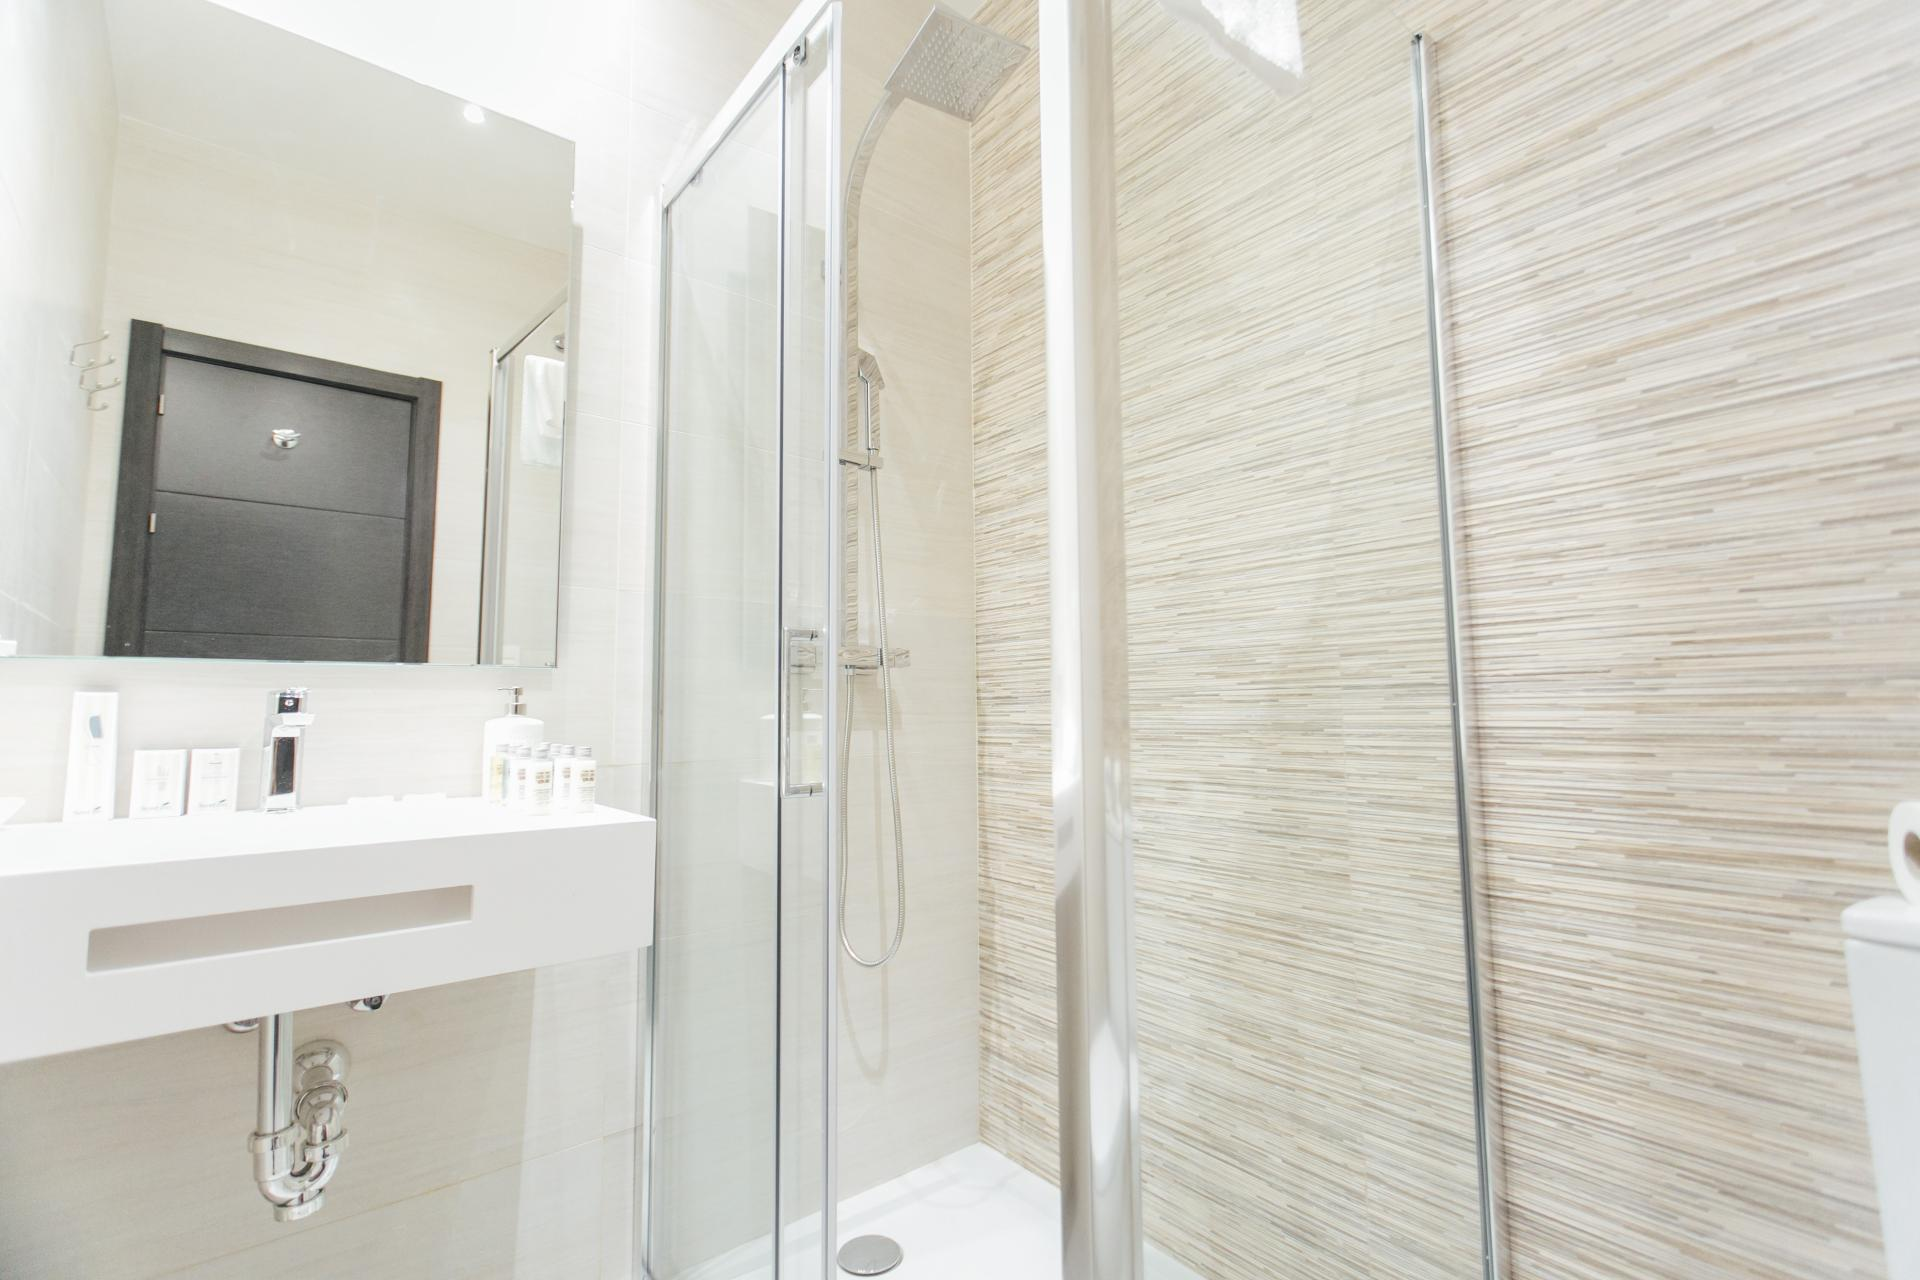 Shower at Plaza Burgos Apartment